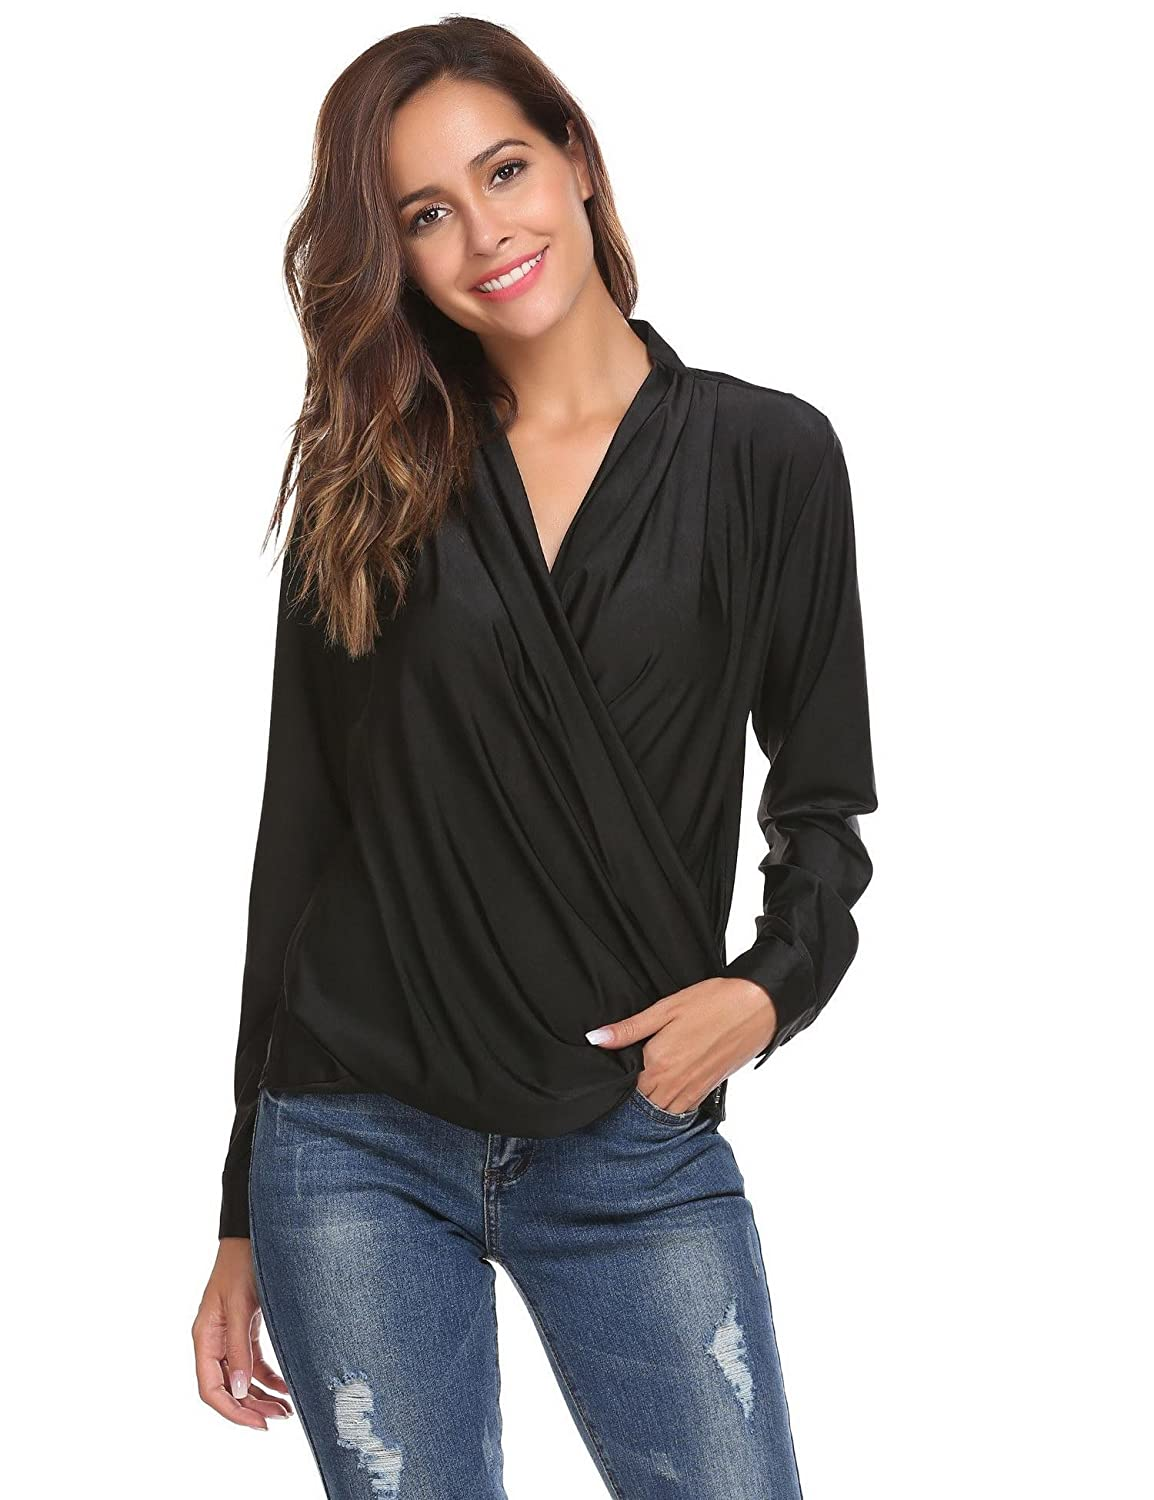 c9d644e60b2825 Zeagoo Women's Sexy Deep V-Neck Blouse Pleated Wrap Front Surplice Club  Wear Top at Amazon Women's Clothing store: